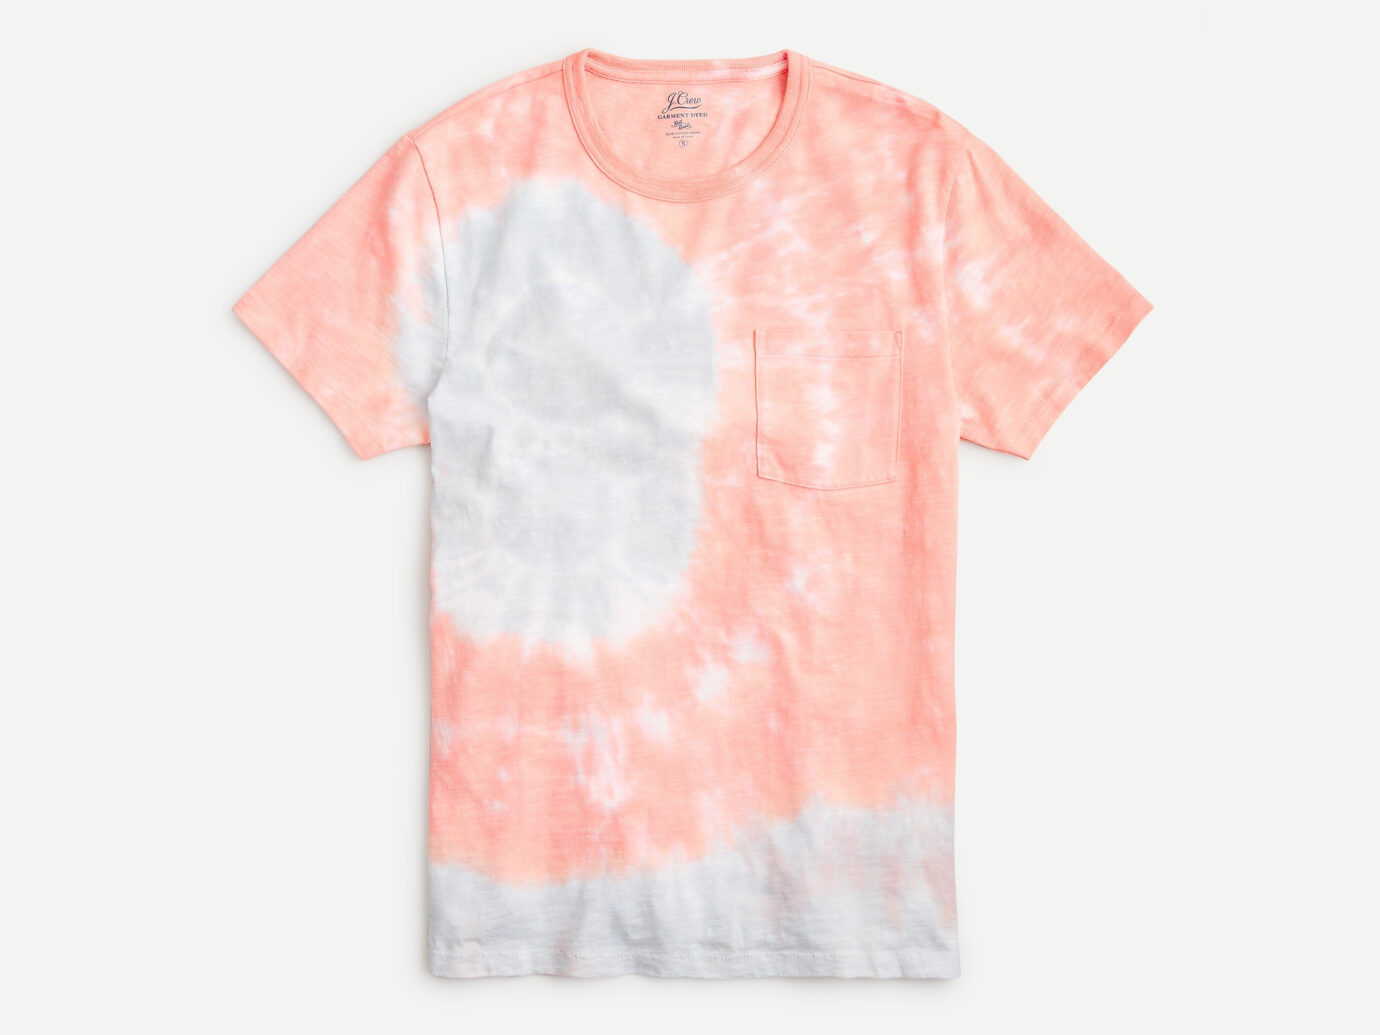 J.Crew Slub cotton crewneck T-shirt in tie-dyed coral swirl